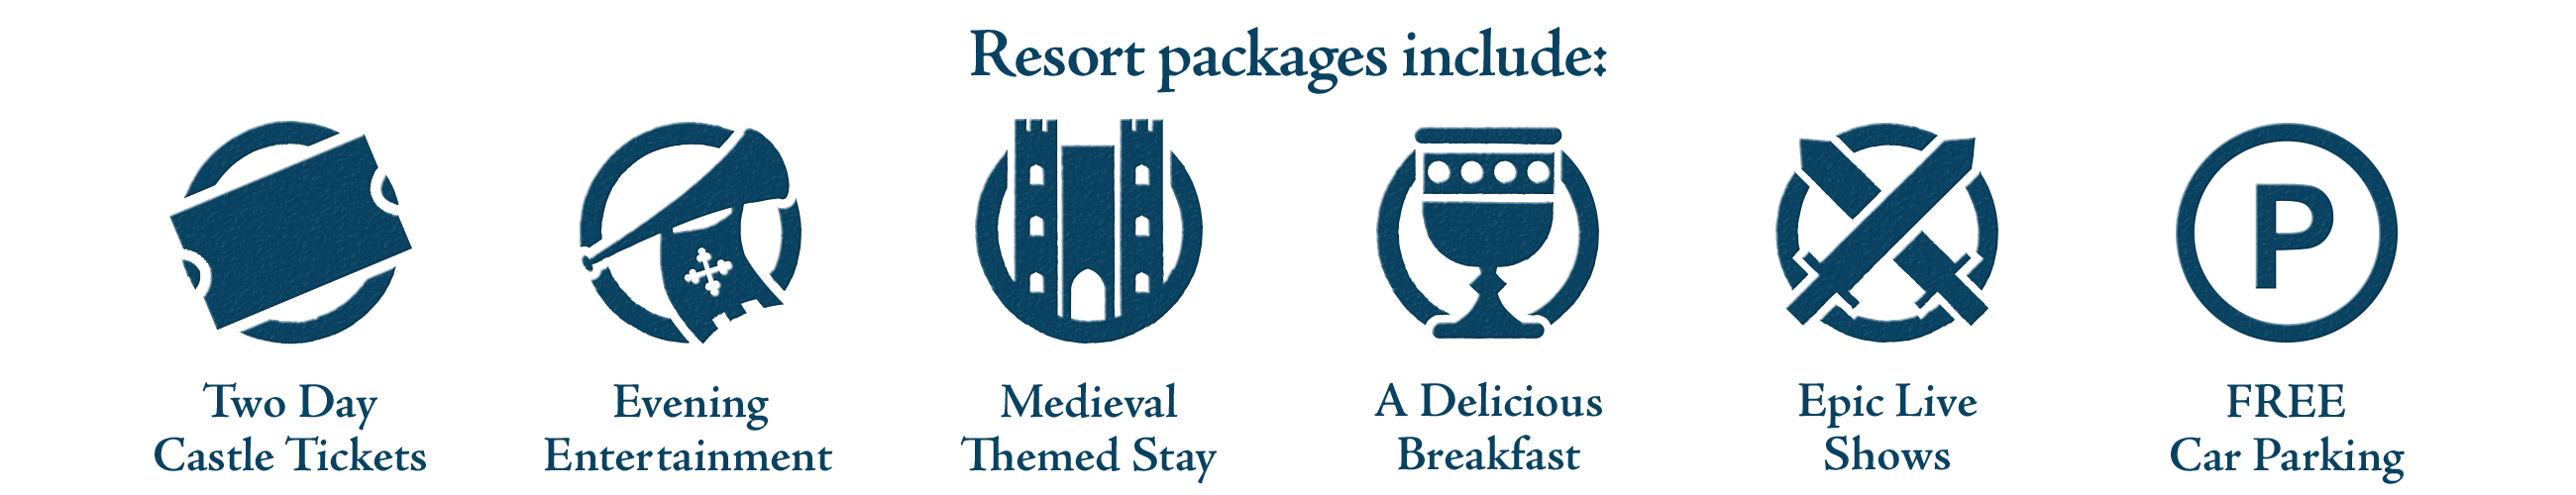 Warwick Castle packages include: Medieval themed stay, breakfast, evening entertainment, free parking, 2nd Day FREE Castle tickets